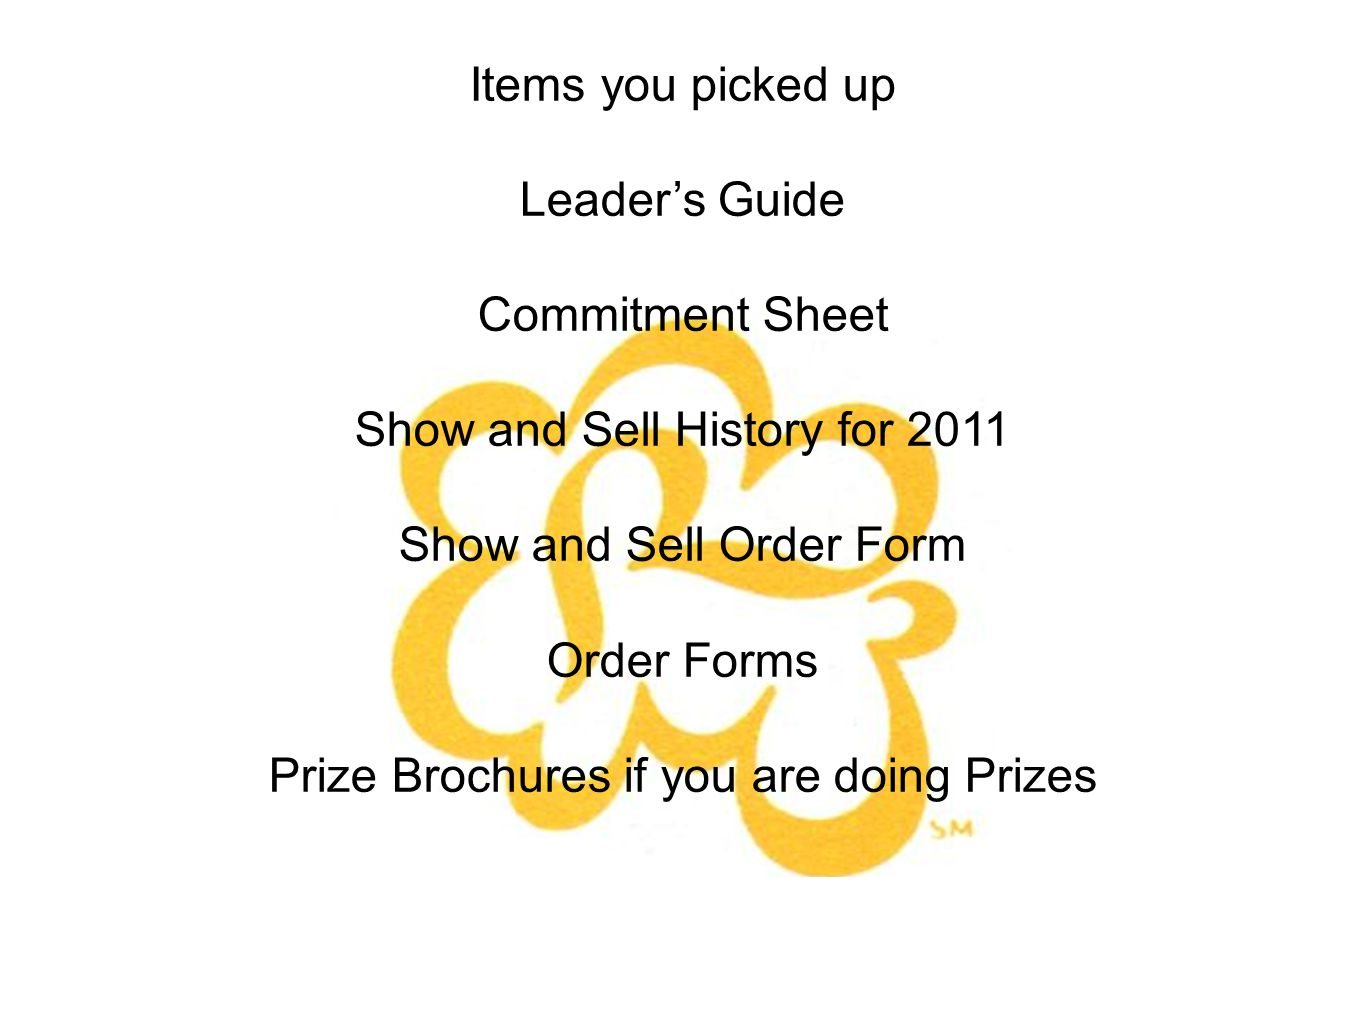 Items you picked up Leaders Guide Commitment Sheet Show and Sell History for 2011 Show and Sell Order Form Order Forms Prize Brochures if you are doing Prizes